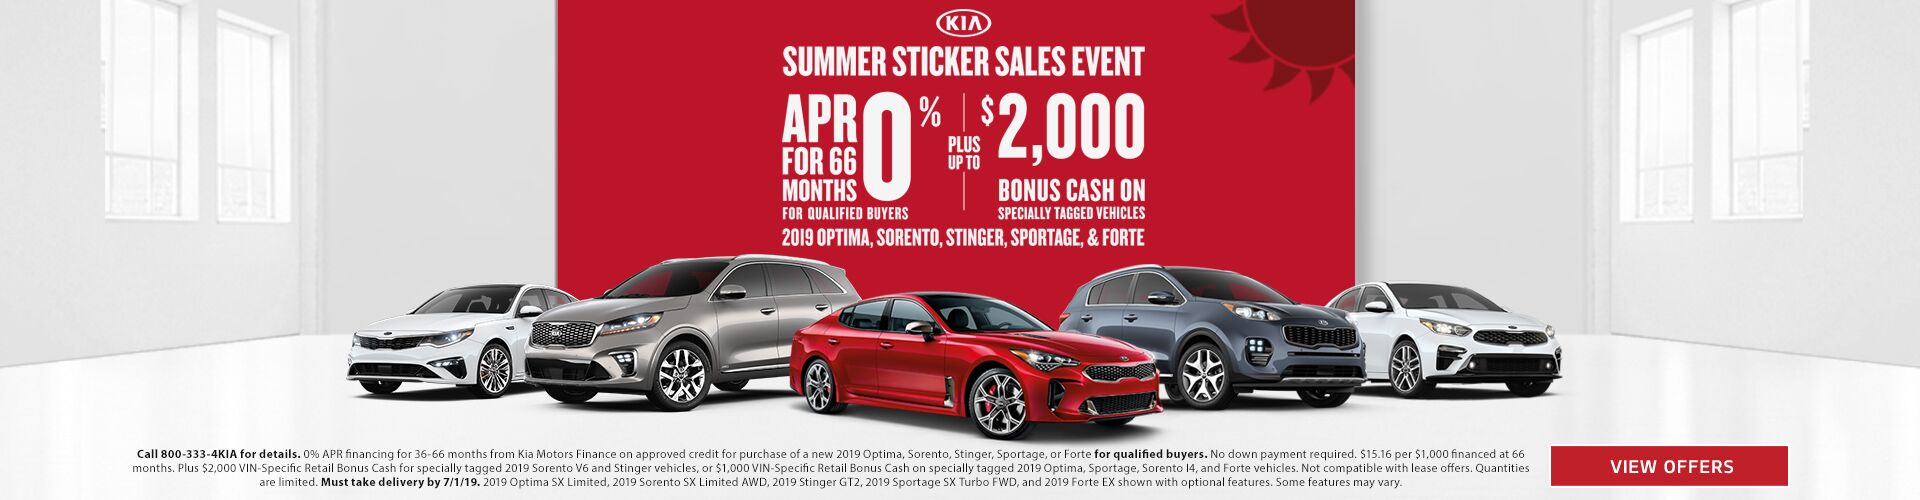 Eastern Shore Kia Kia Dealership Daphne Al Used Cars Team Gunther Kia